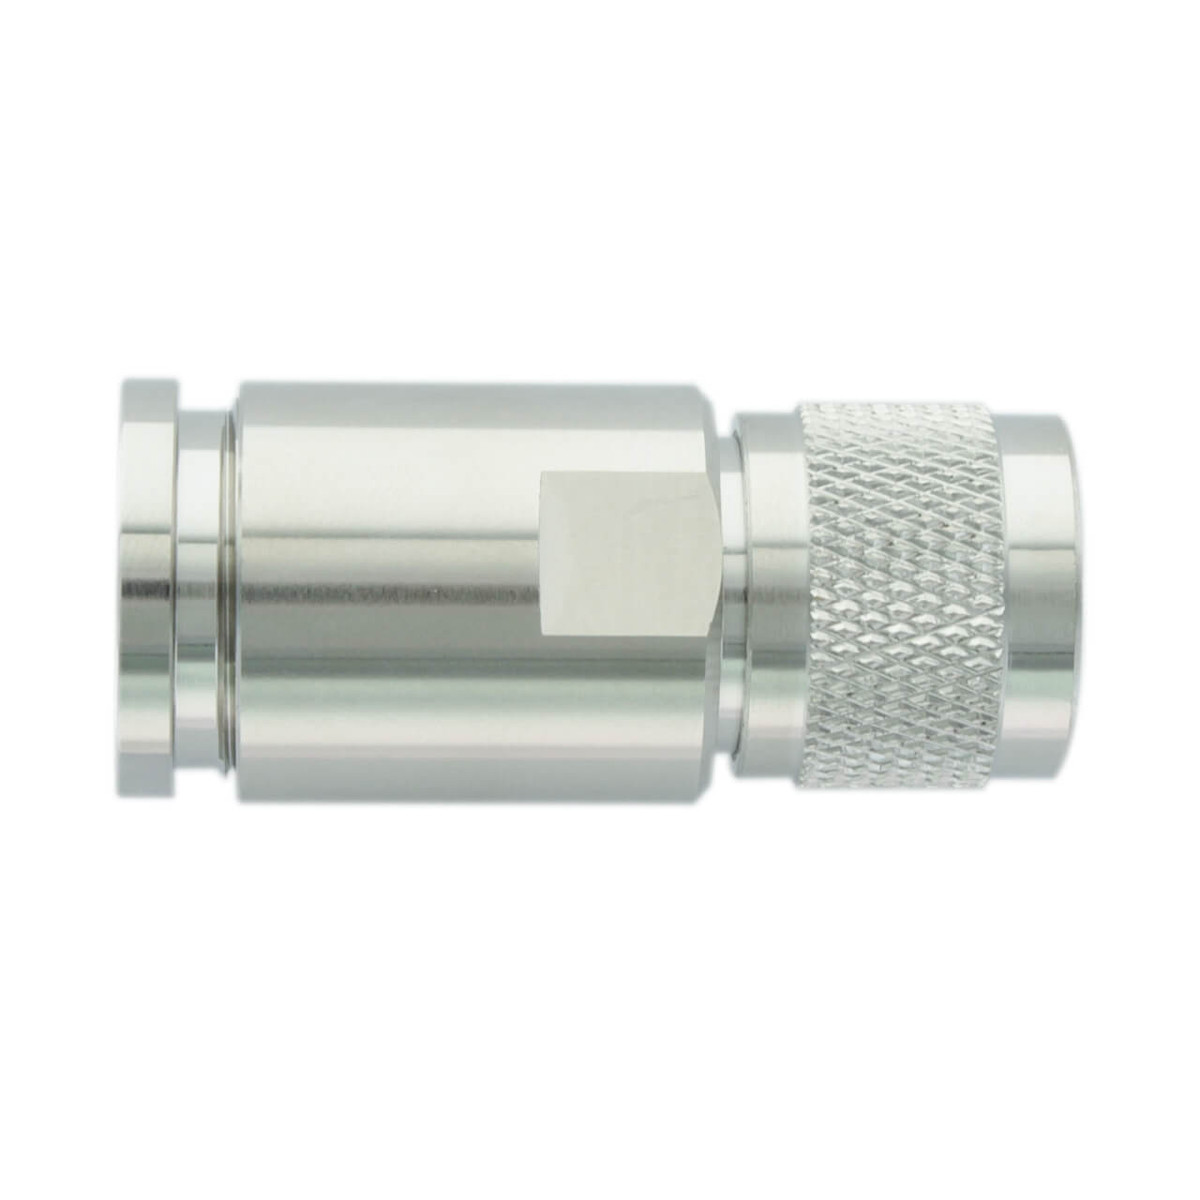 Bolton Technical N-Male Bolton600 Solderless Connector